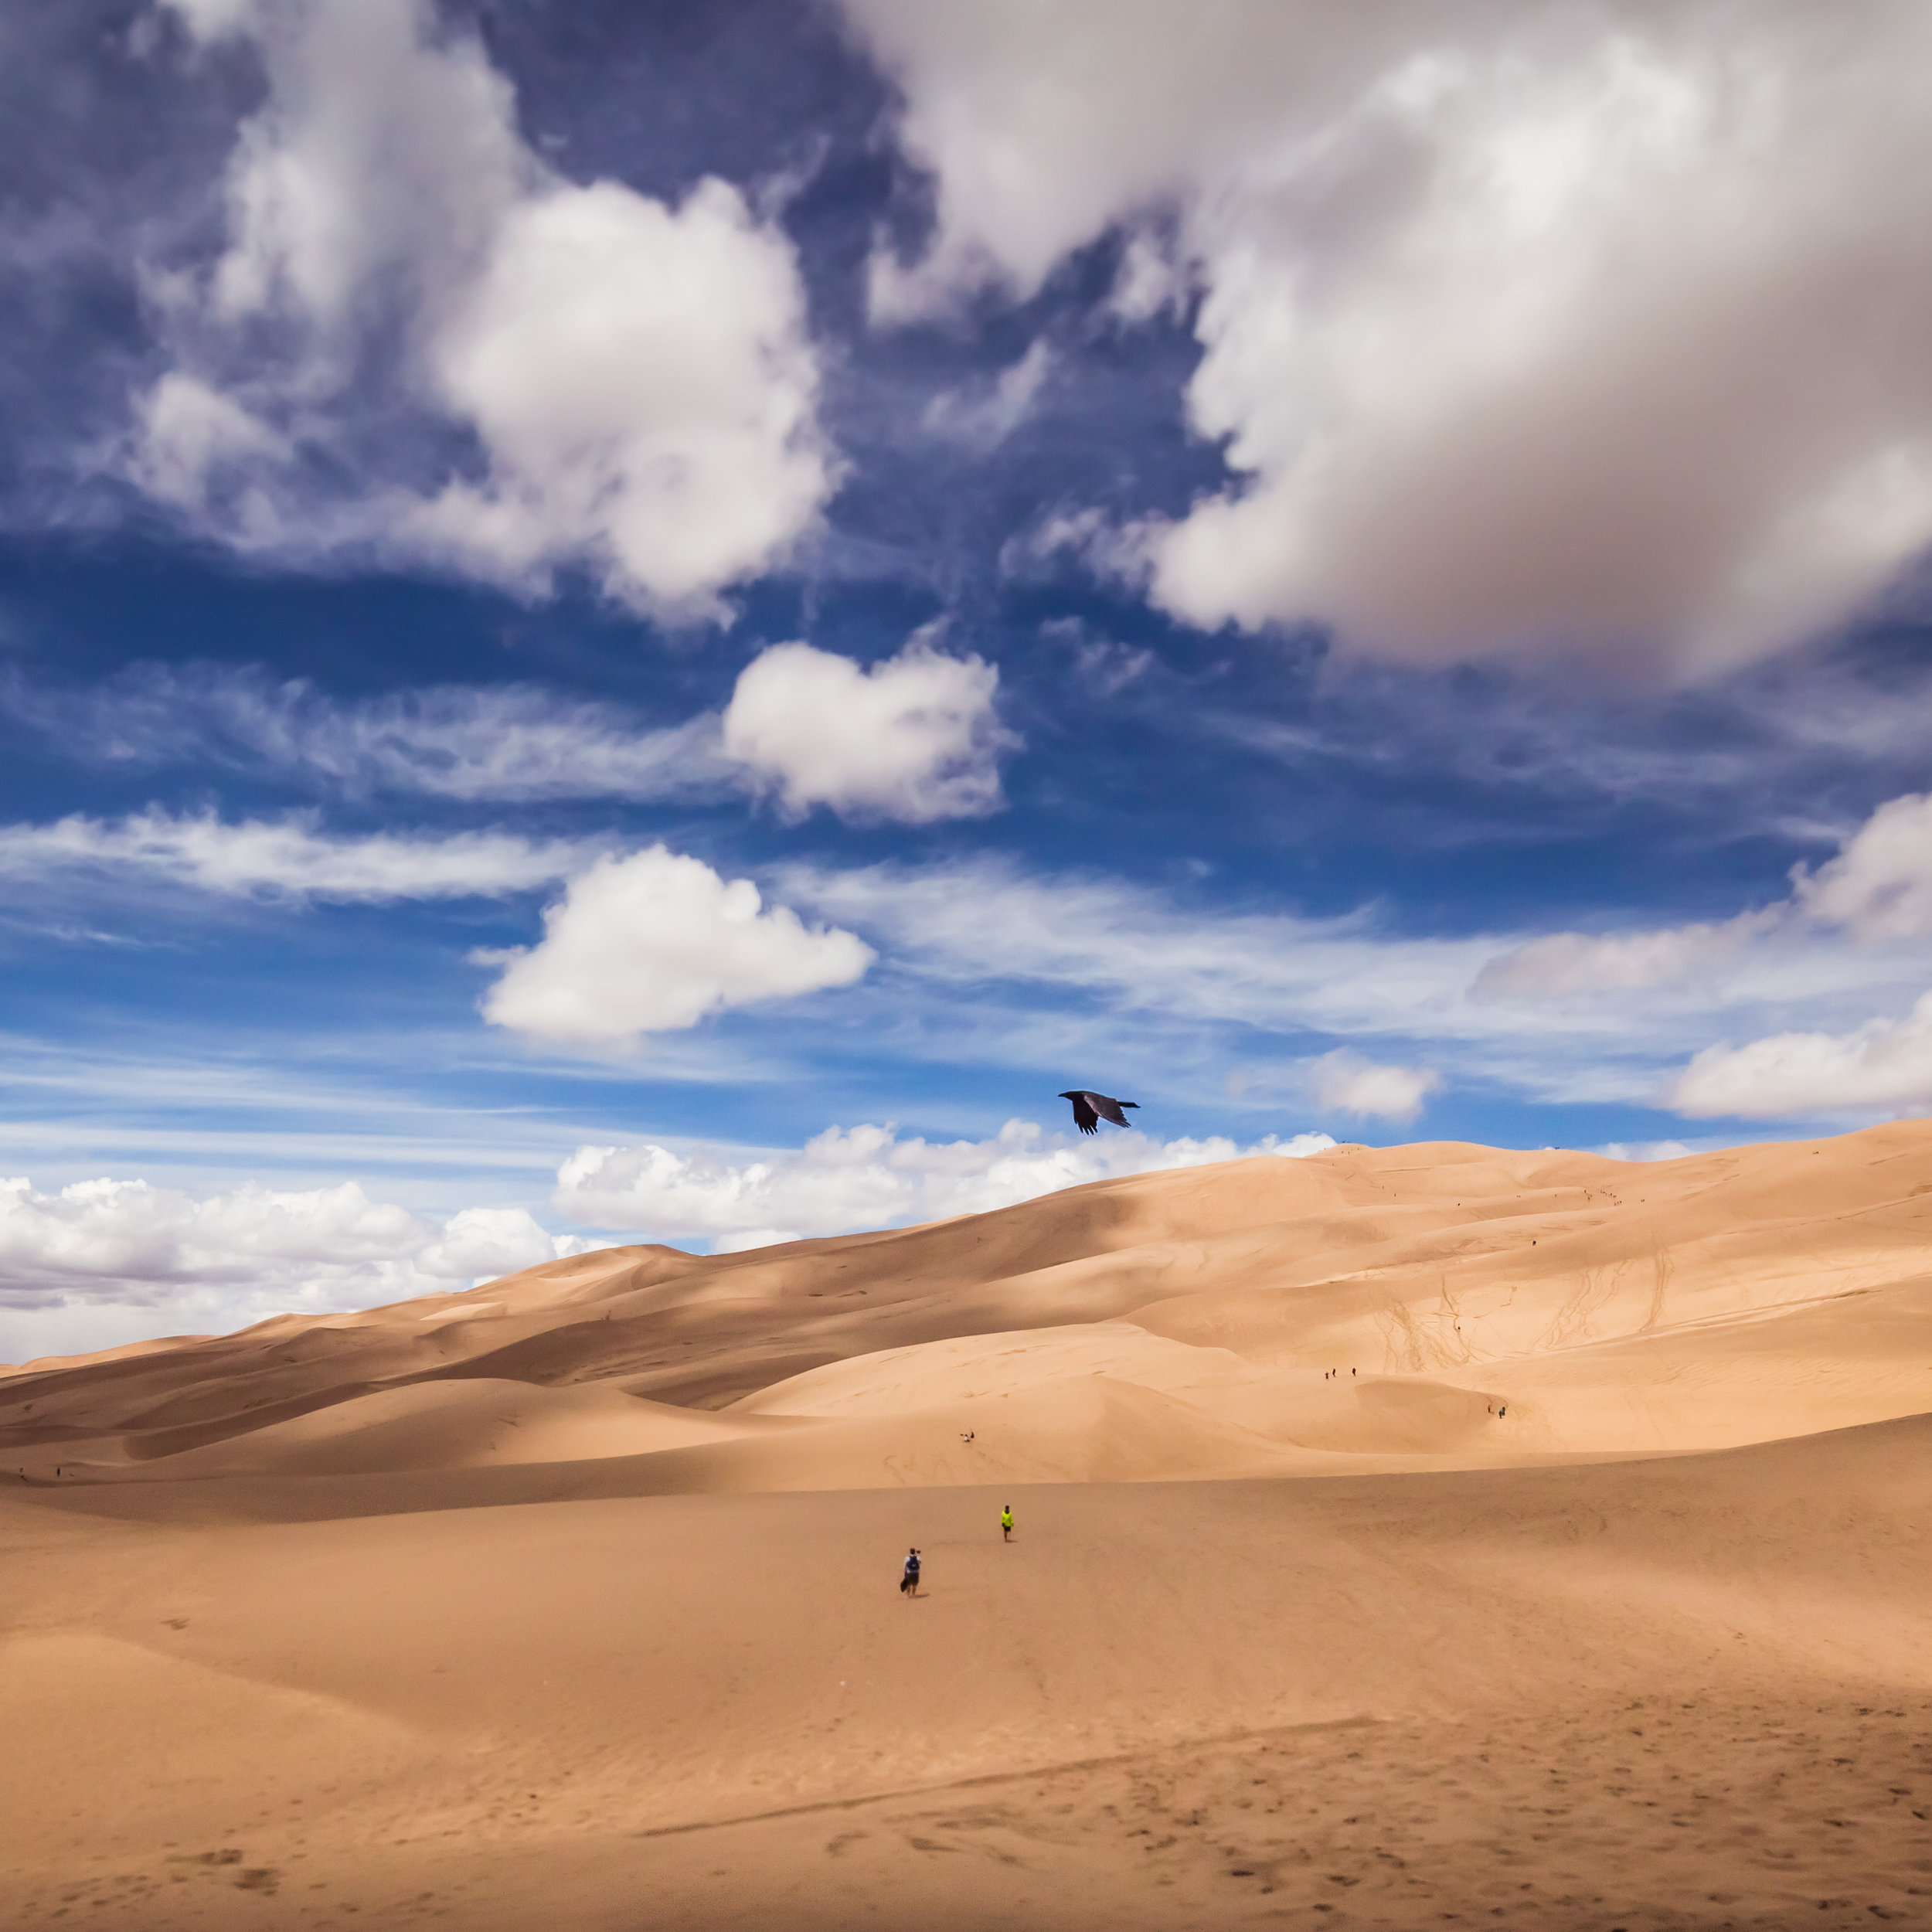 Dunes Bird - 12x12 print in a 16x16 mat  Taken on May 15, 2015 in the Great Sand Dunes National Park.  That bird just flew into the frame. I got lucky with this one.  First shown at the Denver Art Society -November 2016 First Friday.